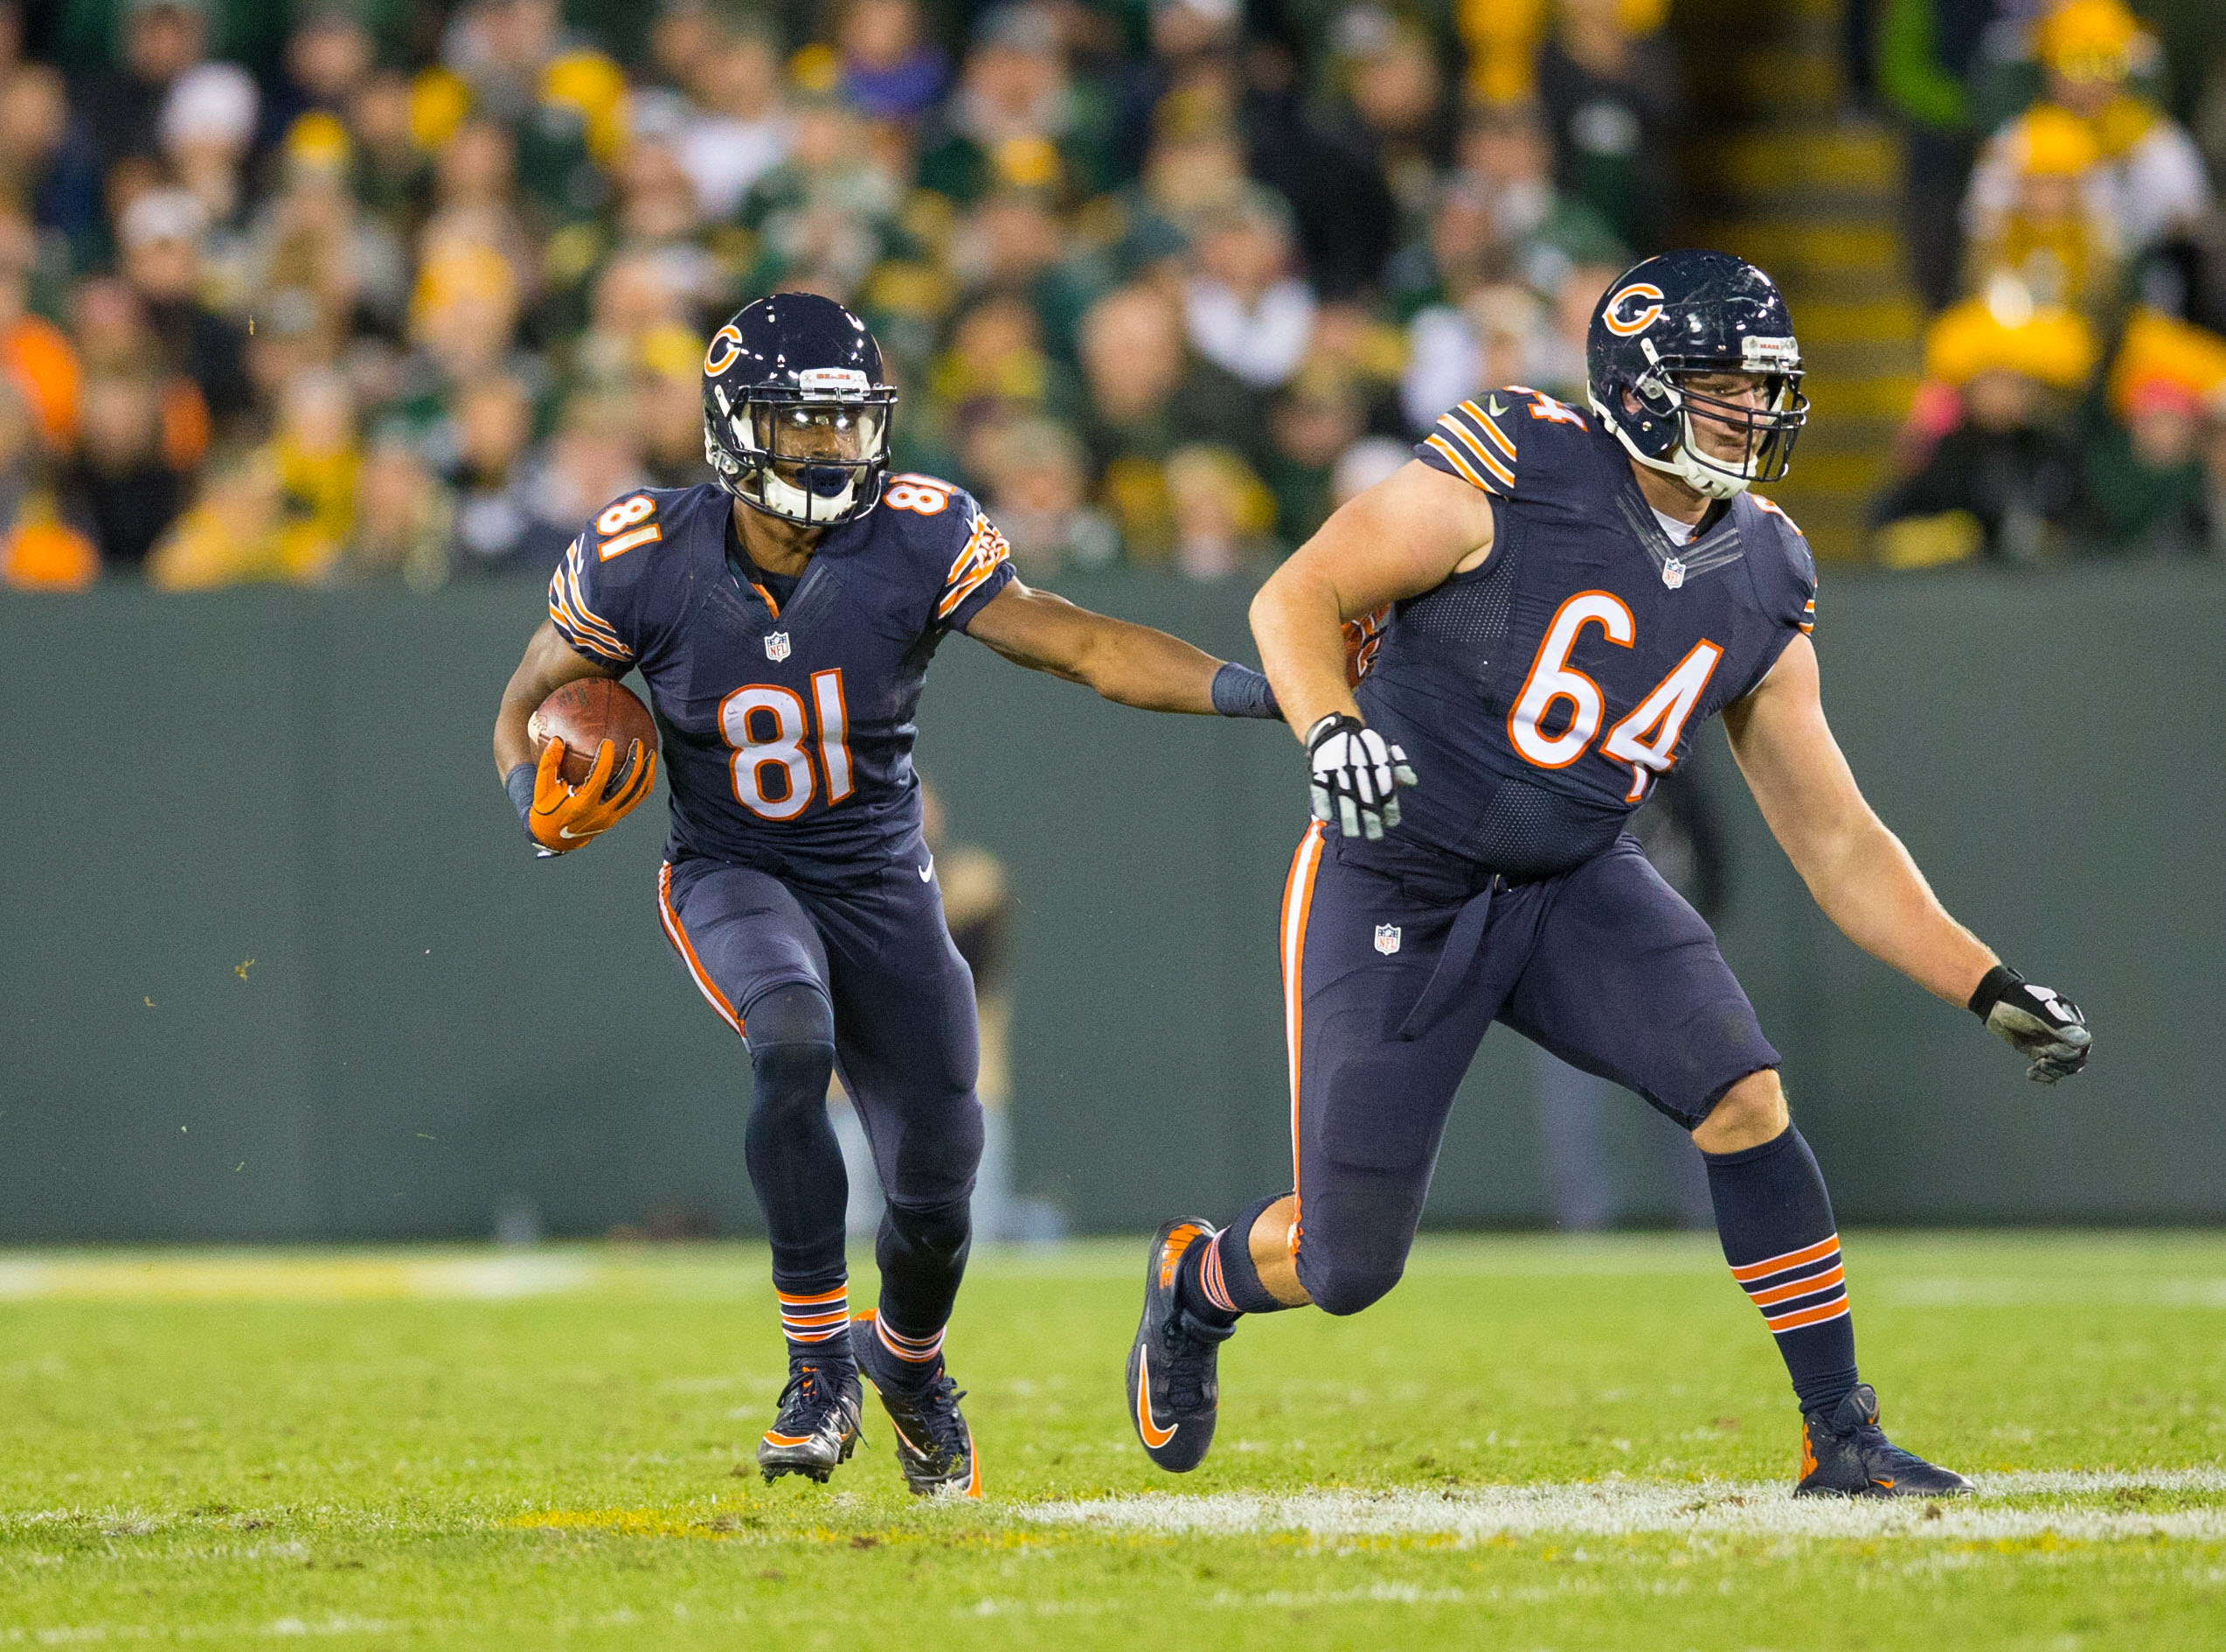 Oct 20, 2016; Green Bay, WI, USA; Chicago Bears wide receiver Cameron Meredith (81) rushes with the football behind offensive lineman Eric Kush (64) during the game against the Green Bay Packers at Lambeau Field. Green Bay won 26-10. Mandatory Credit: Jeff Hanisch-USA TODAY Sports